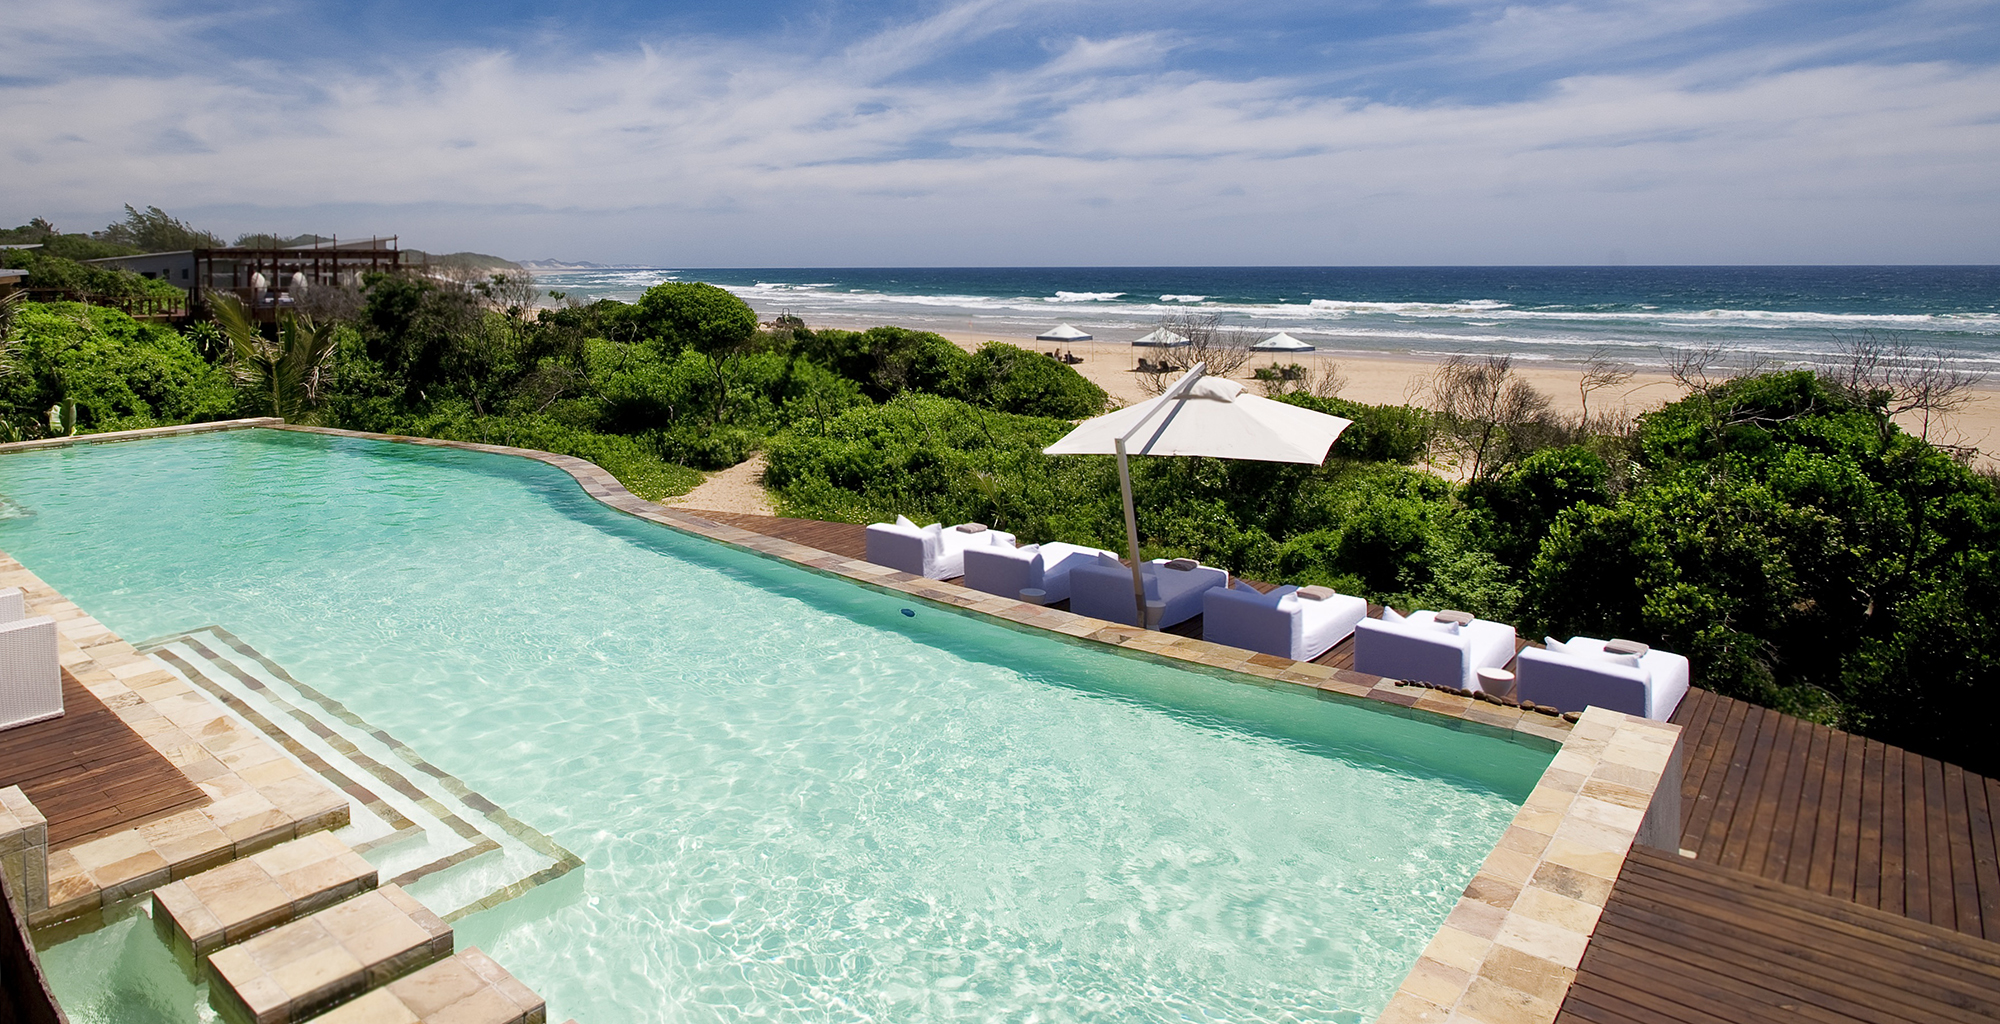 Mozambique-Maputo-Inhambane-White-Pearl-Resort-Swimming-Pool